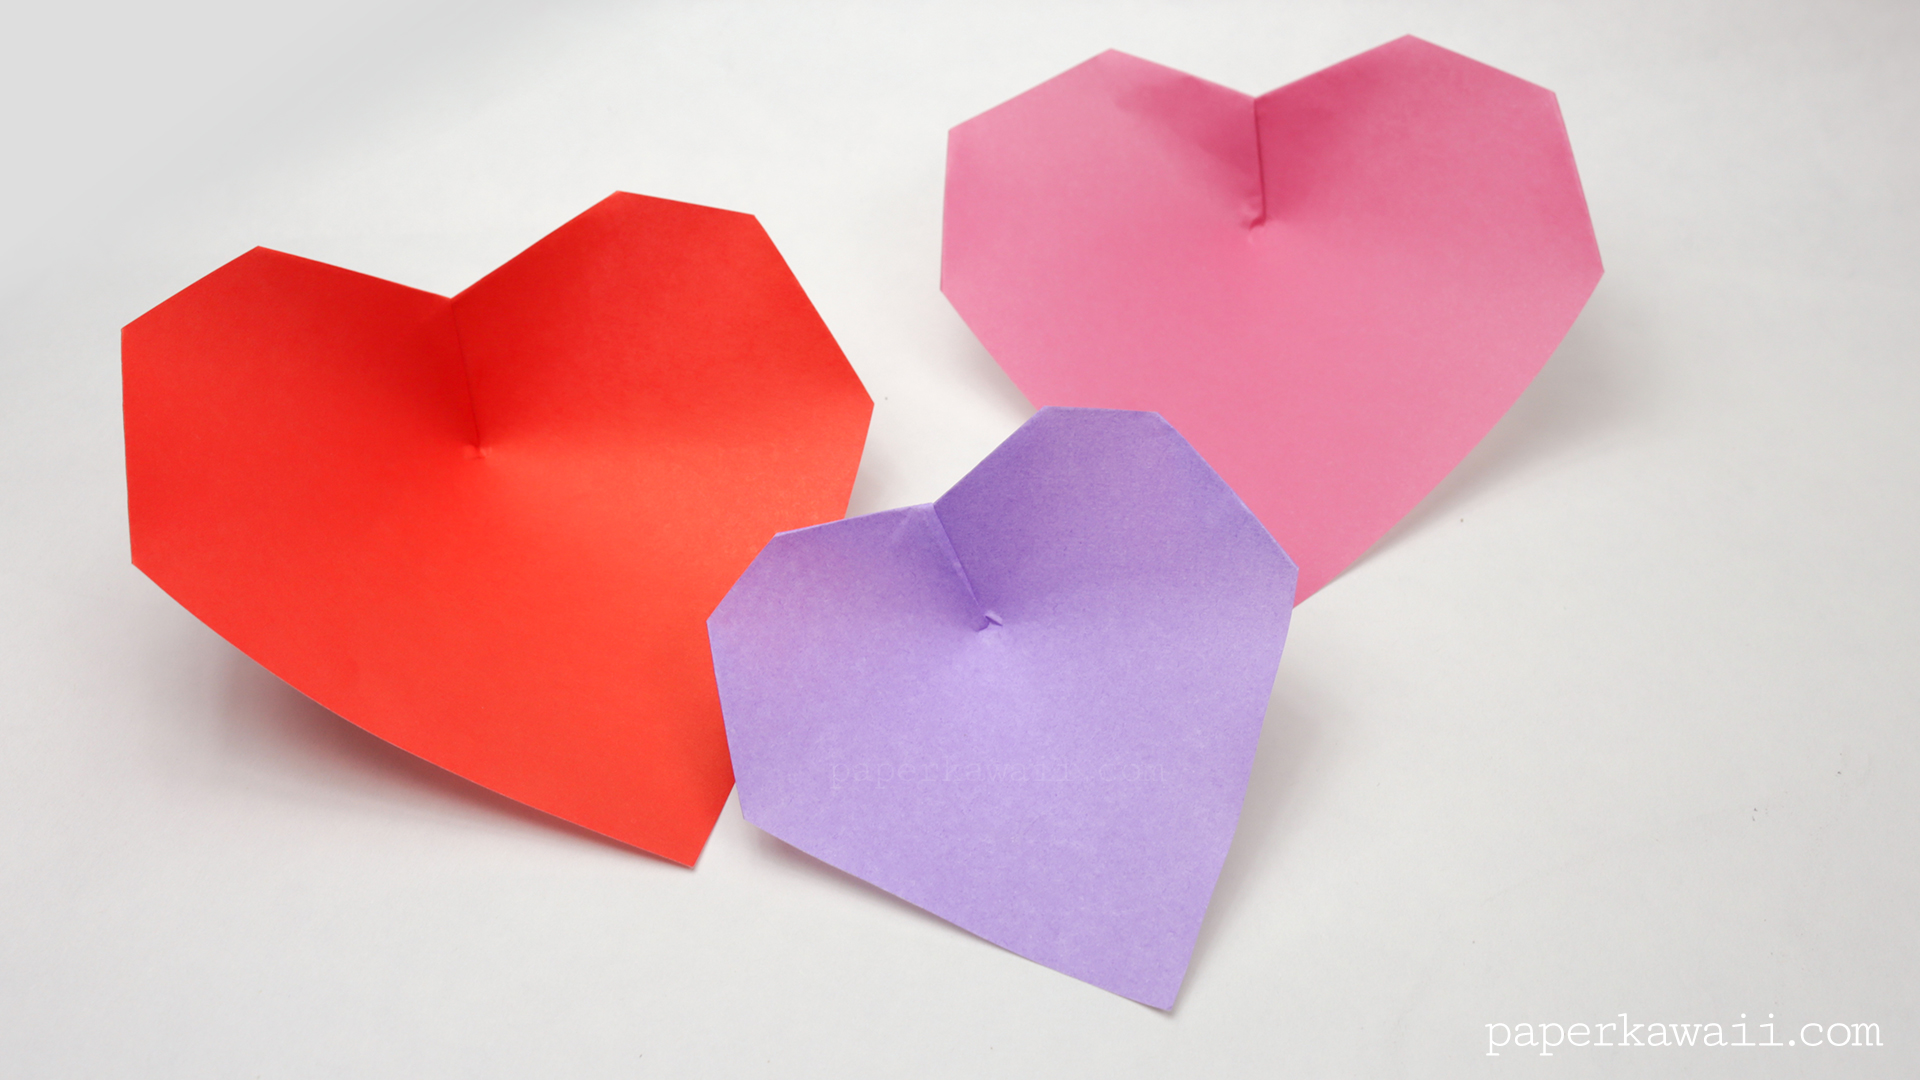 Super Easy Origami Heart Instructions - Paper Kawaii - photo#3